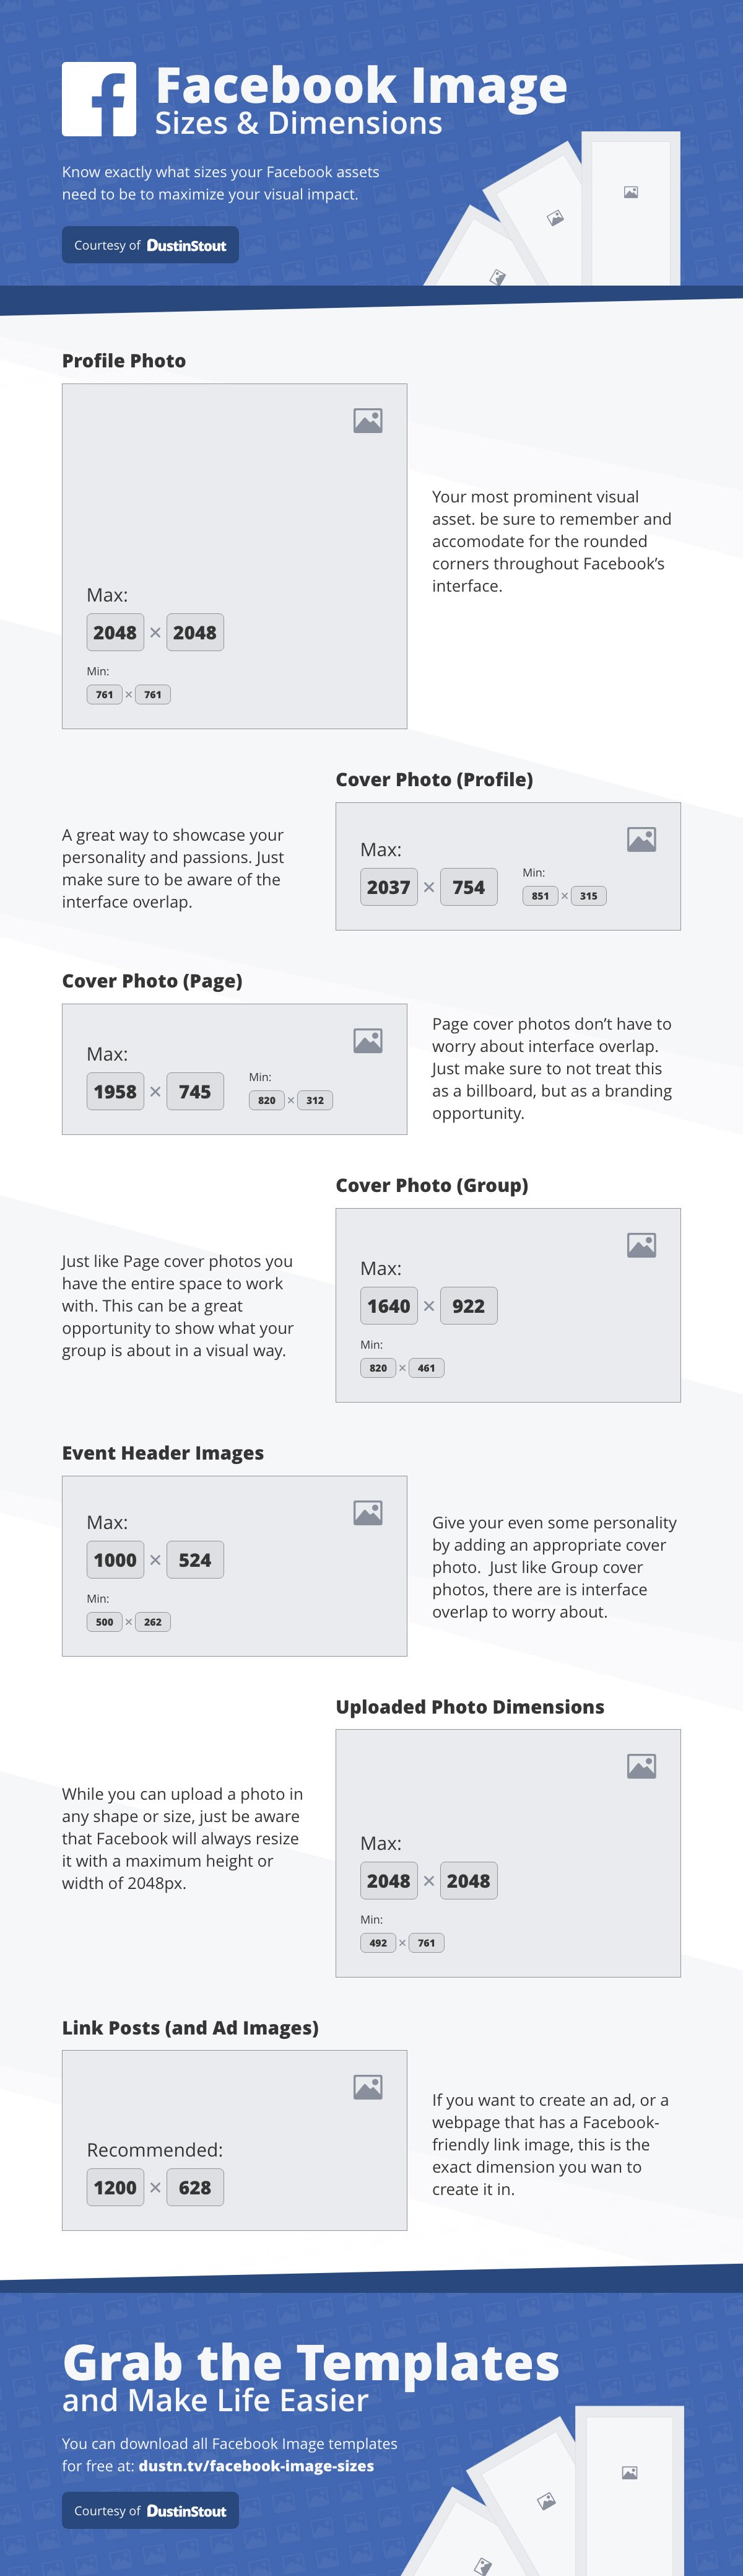 Facebook Image Sizes Infographic by Dustin Stout